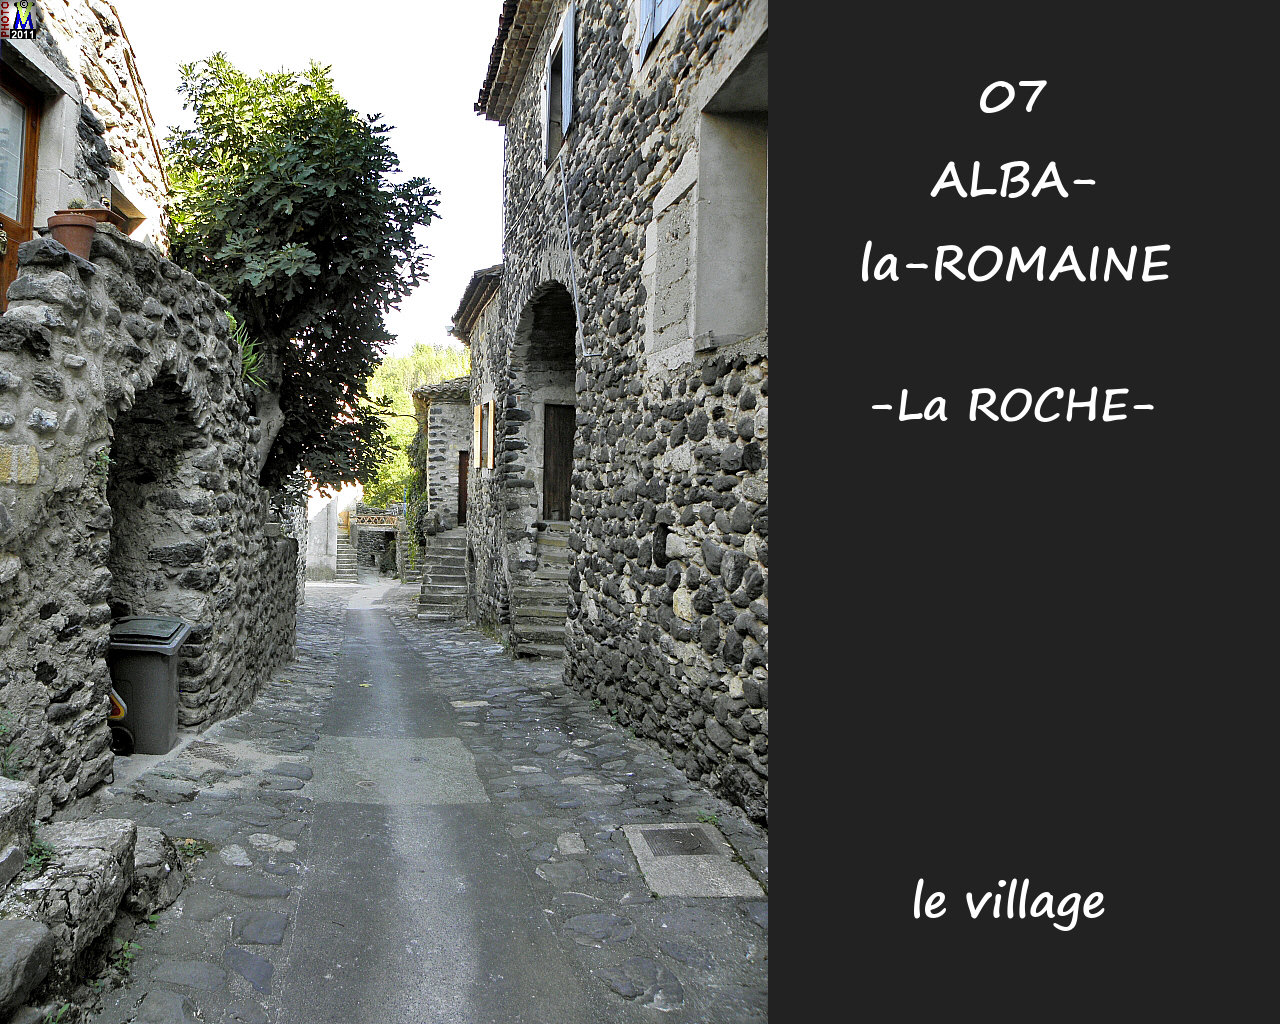 07ALBA-ROMAINEzROCHE_village_134.jpg